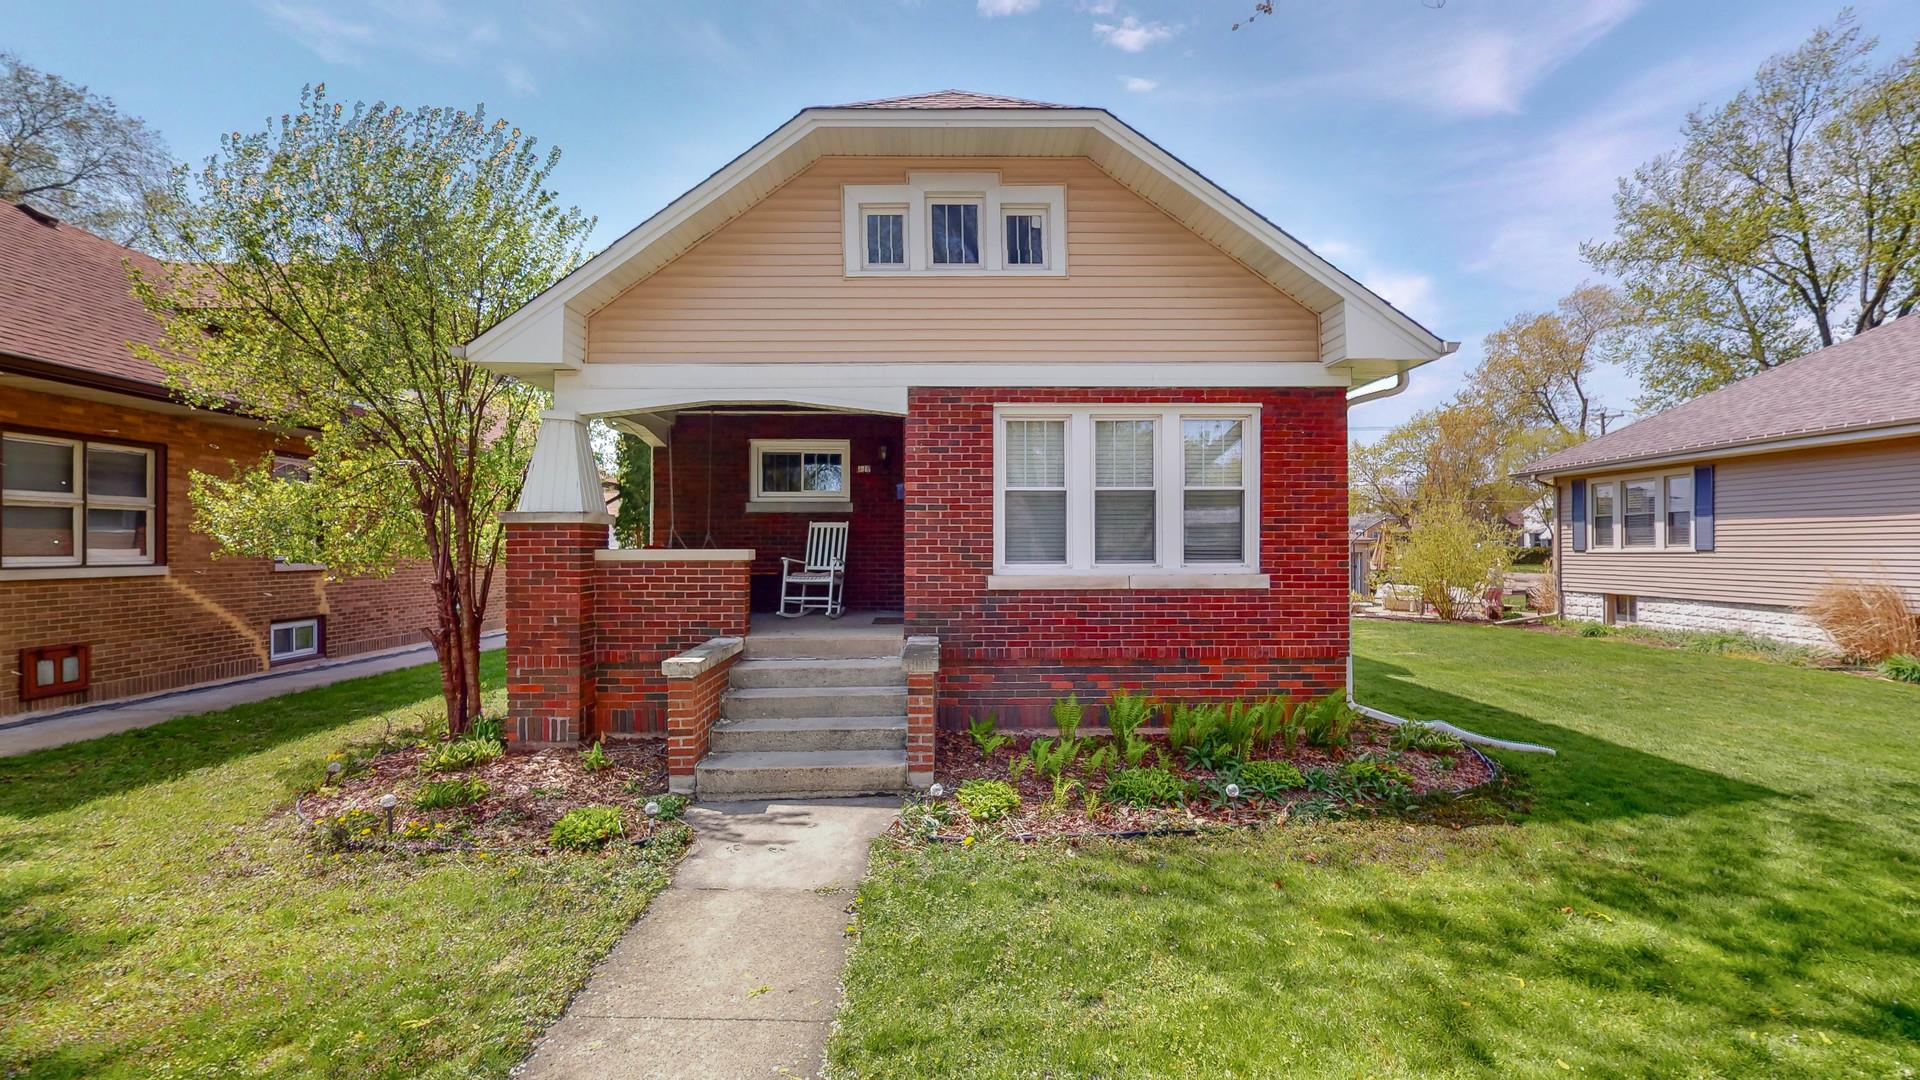 510 Joliet Street, West Chicago, IL 60185 - #: 11060165